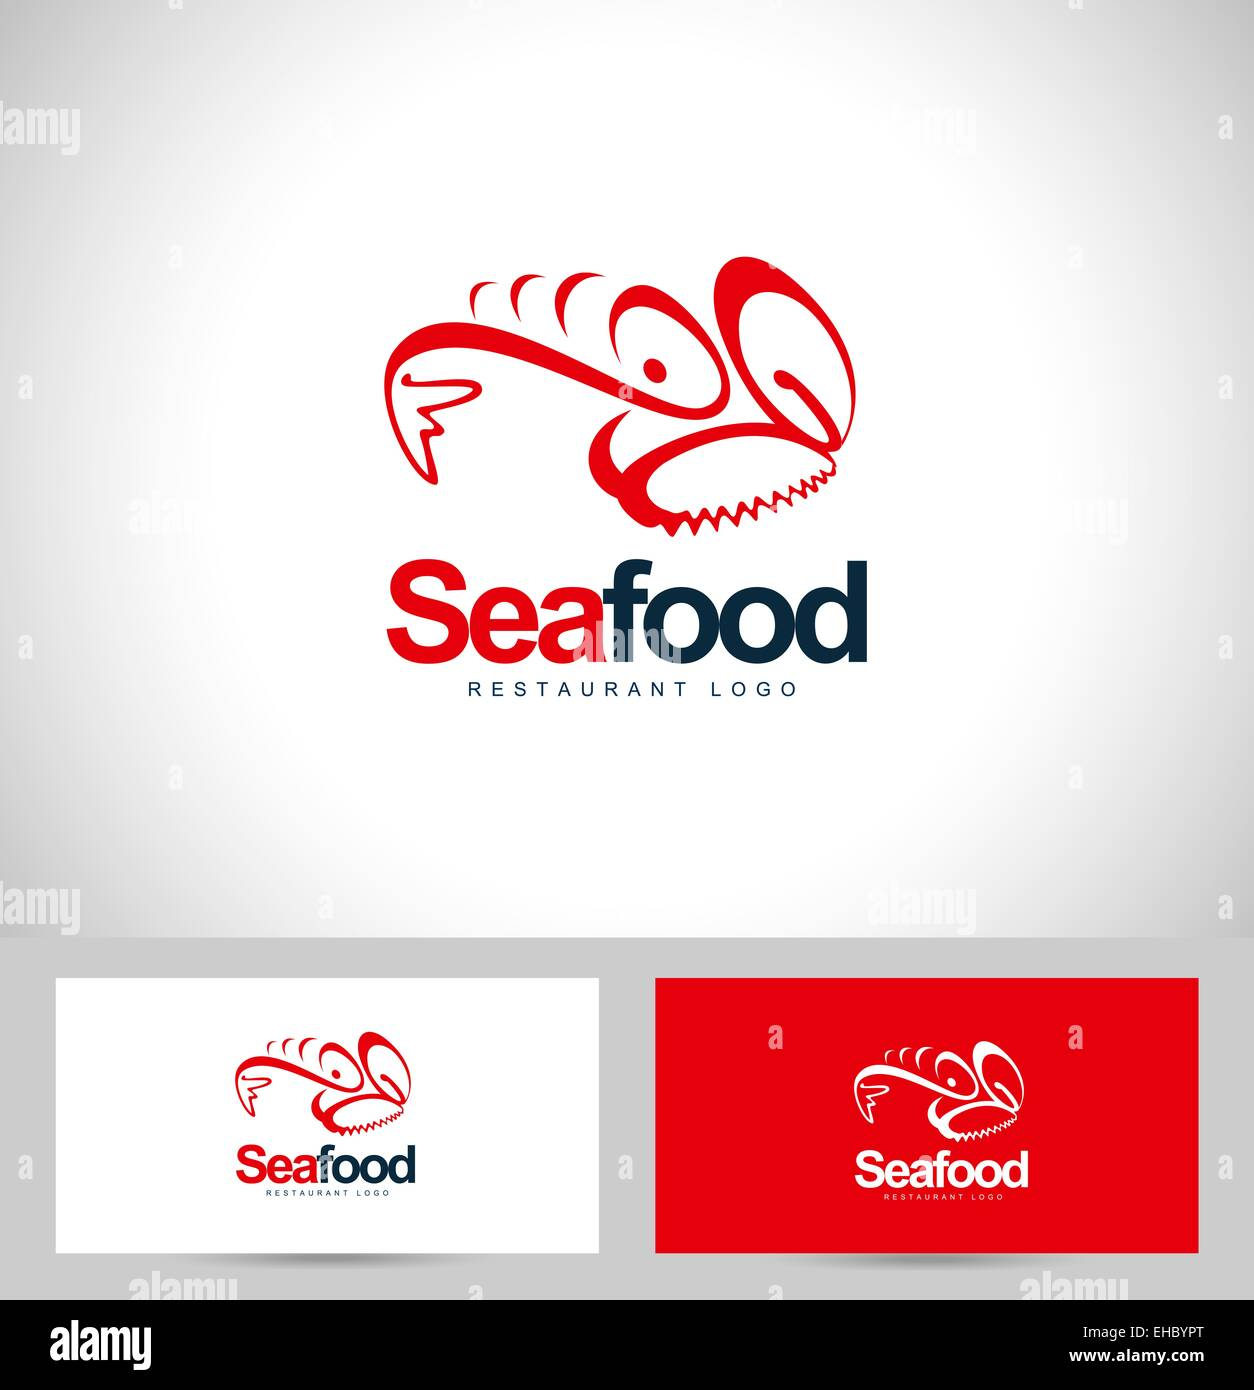 Seafood Restaurant Logo Design Creative Logo Concept With Business Stock Photo Alamy